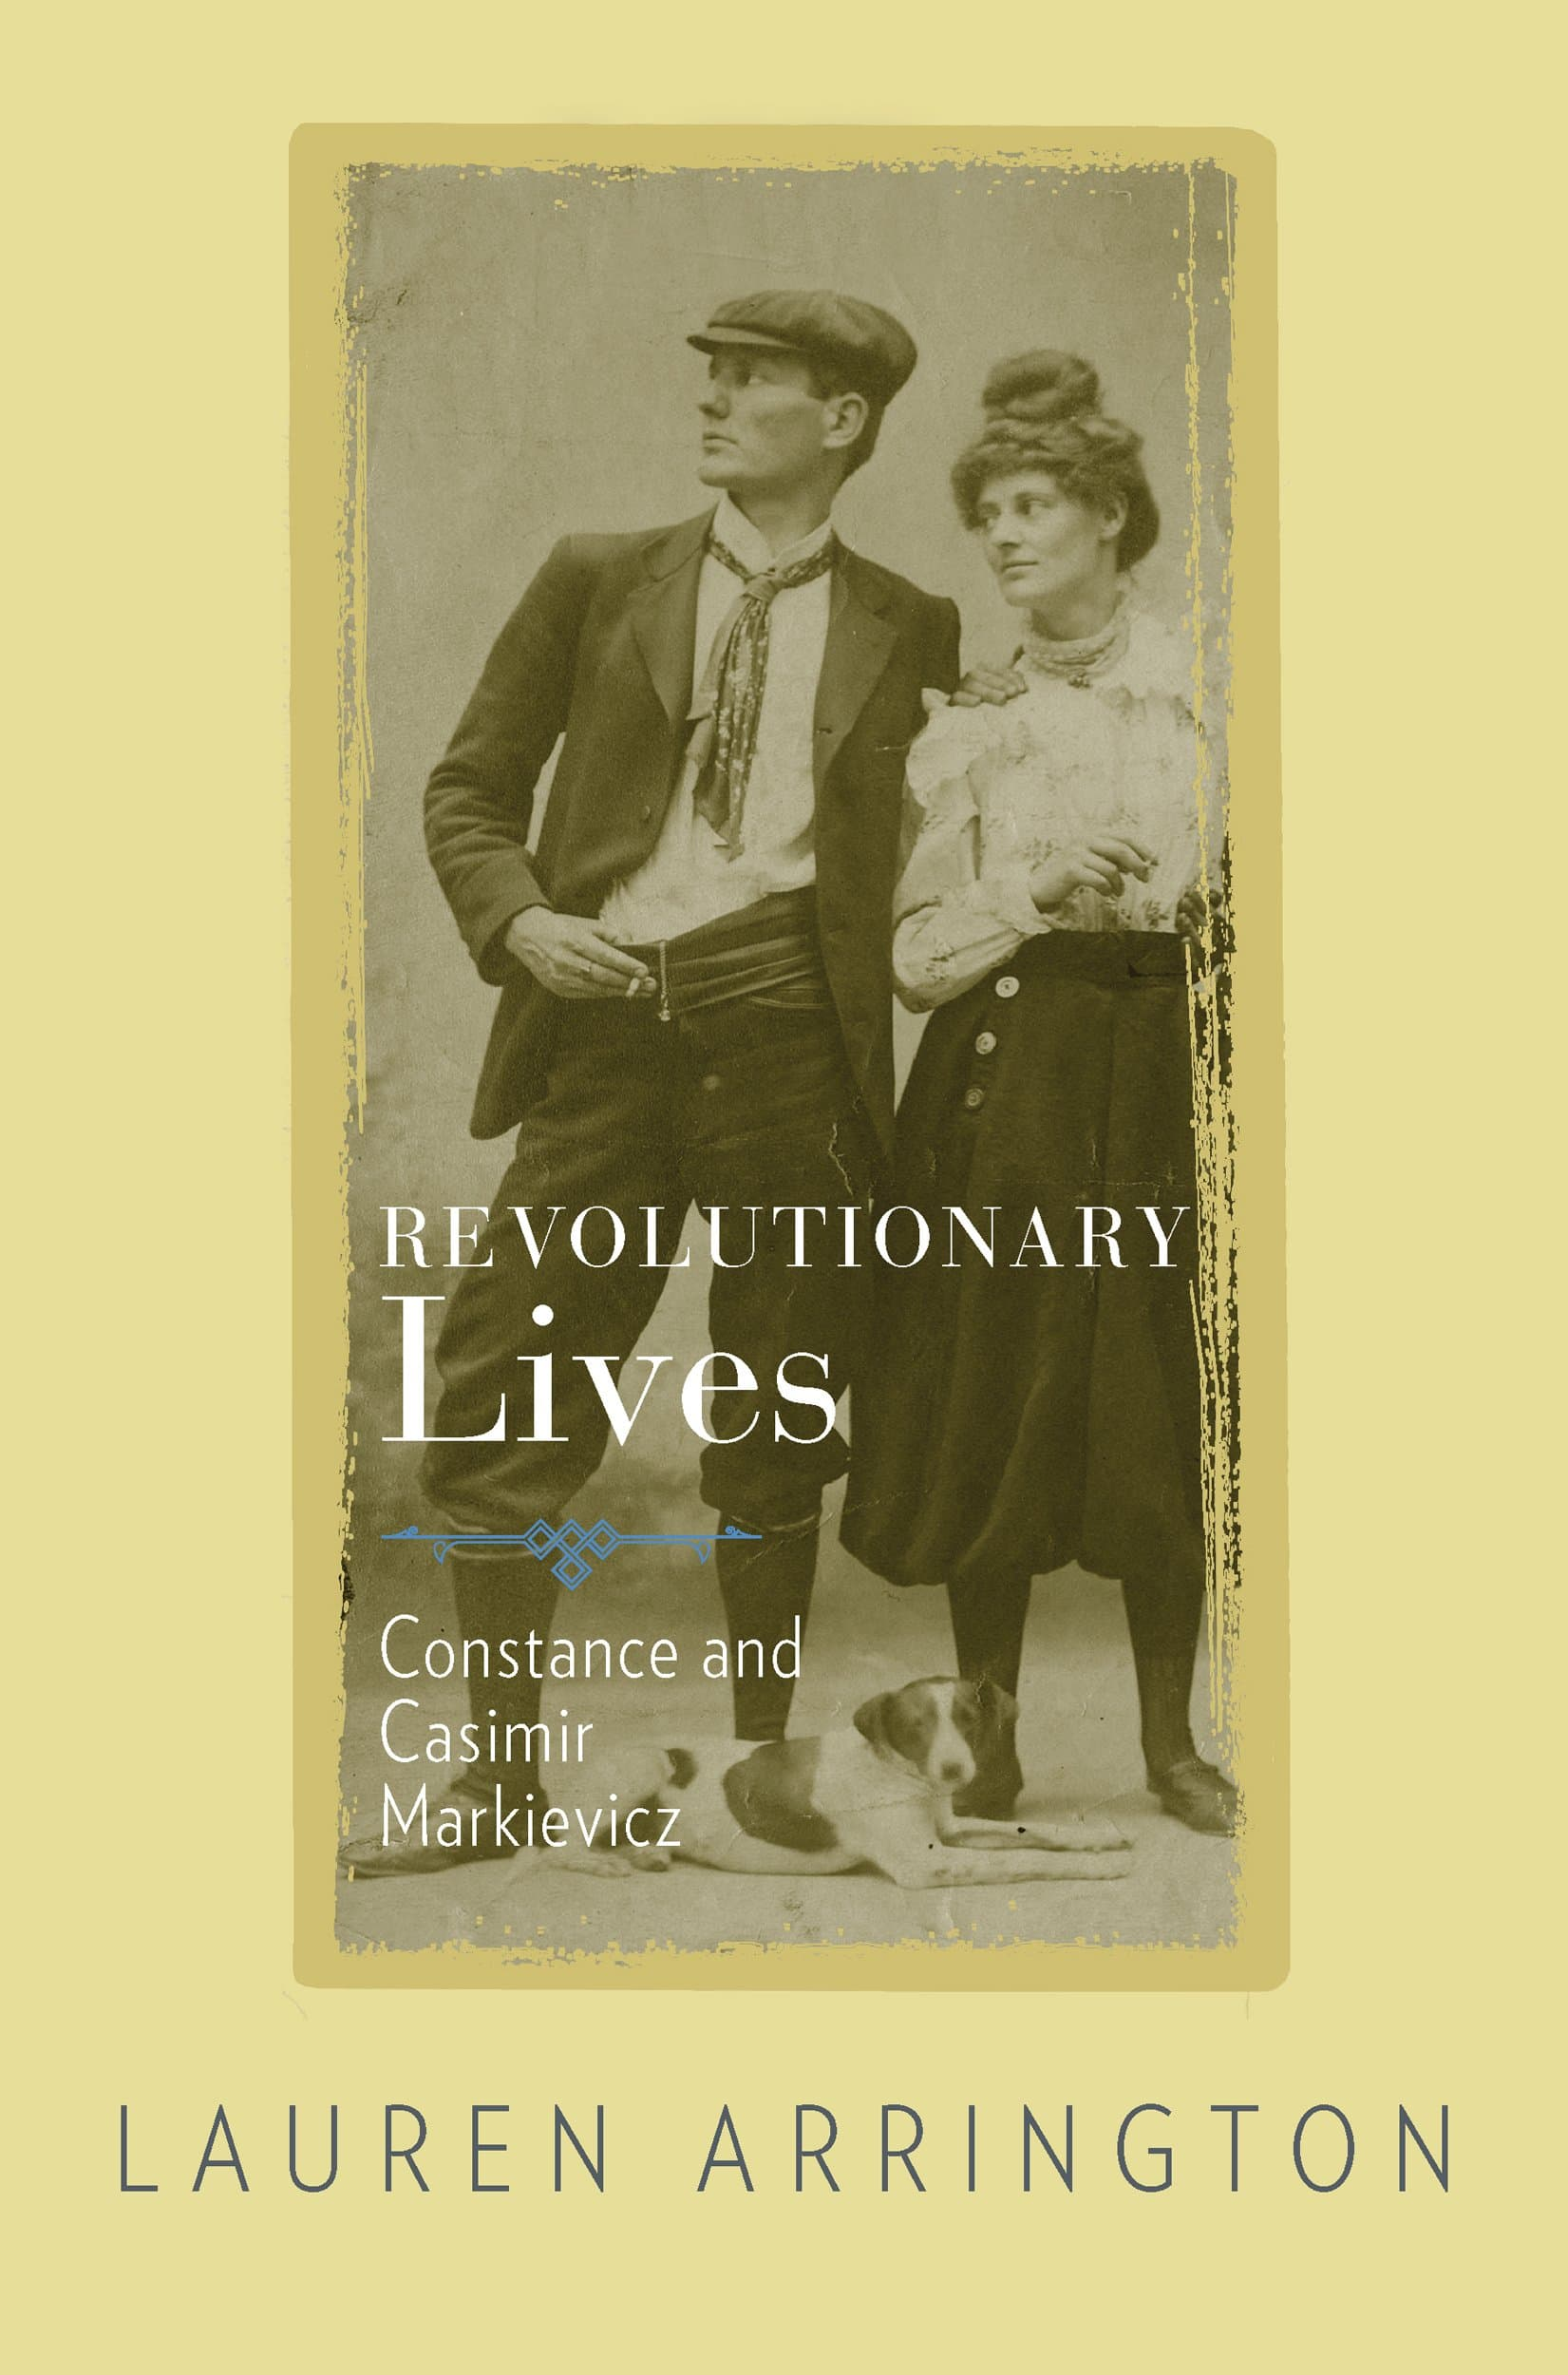 Revolutionary Lives - Revolutionary Lives: Constance and Casimir Markievicz